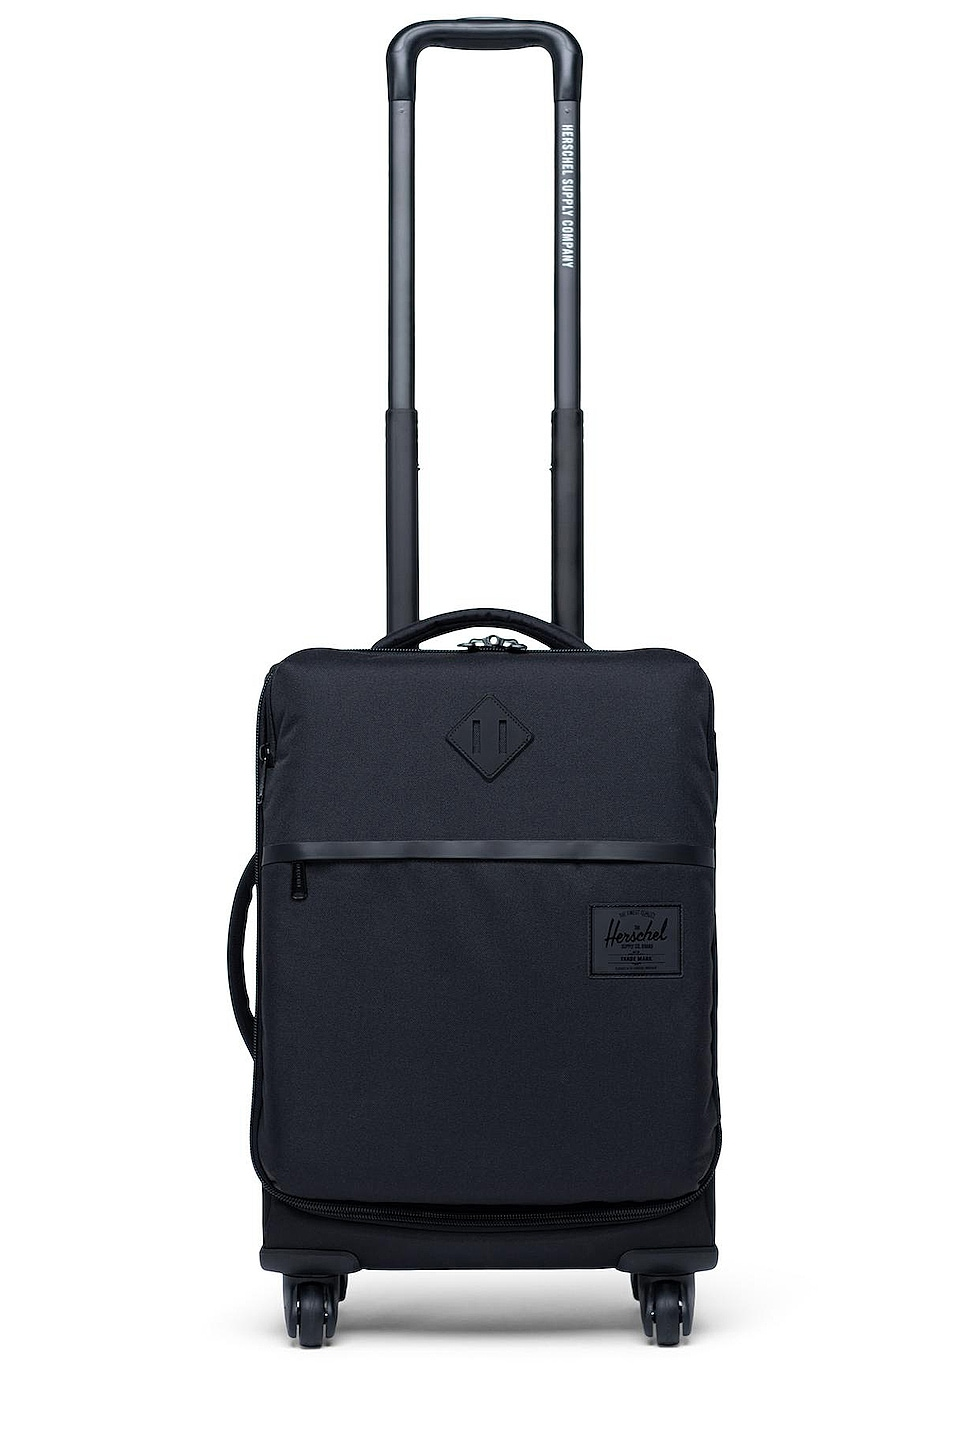 Herschel Supply Co. Highland Carry On Suitcase in Black